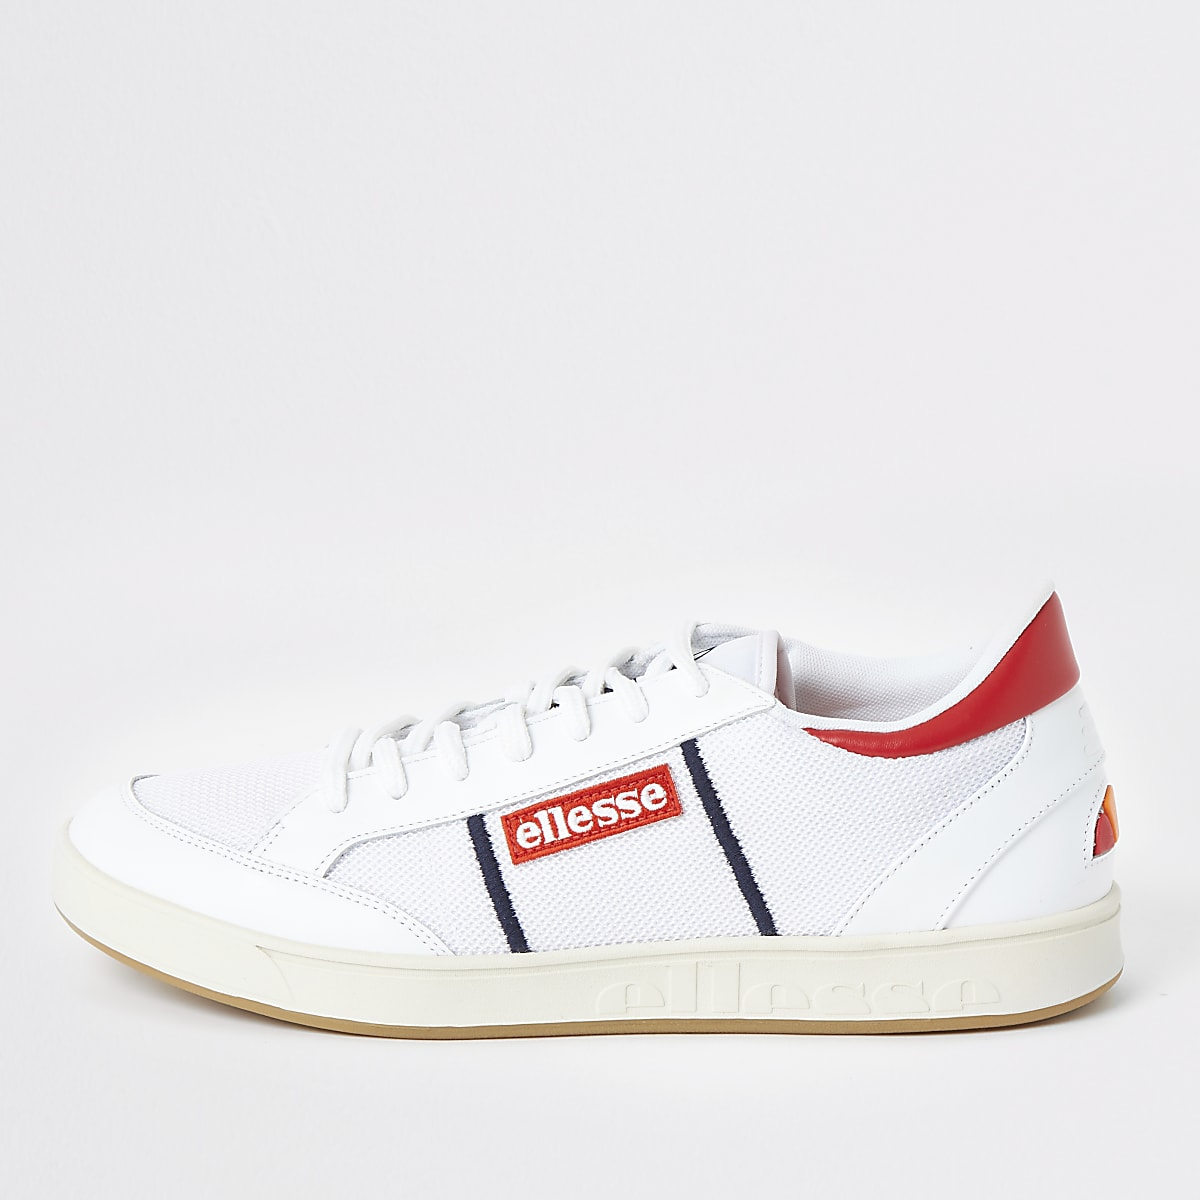 Ellesse white lace-up sneakers